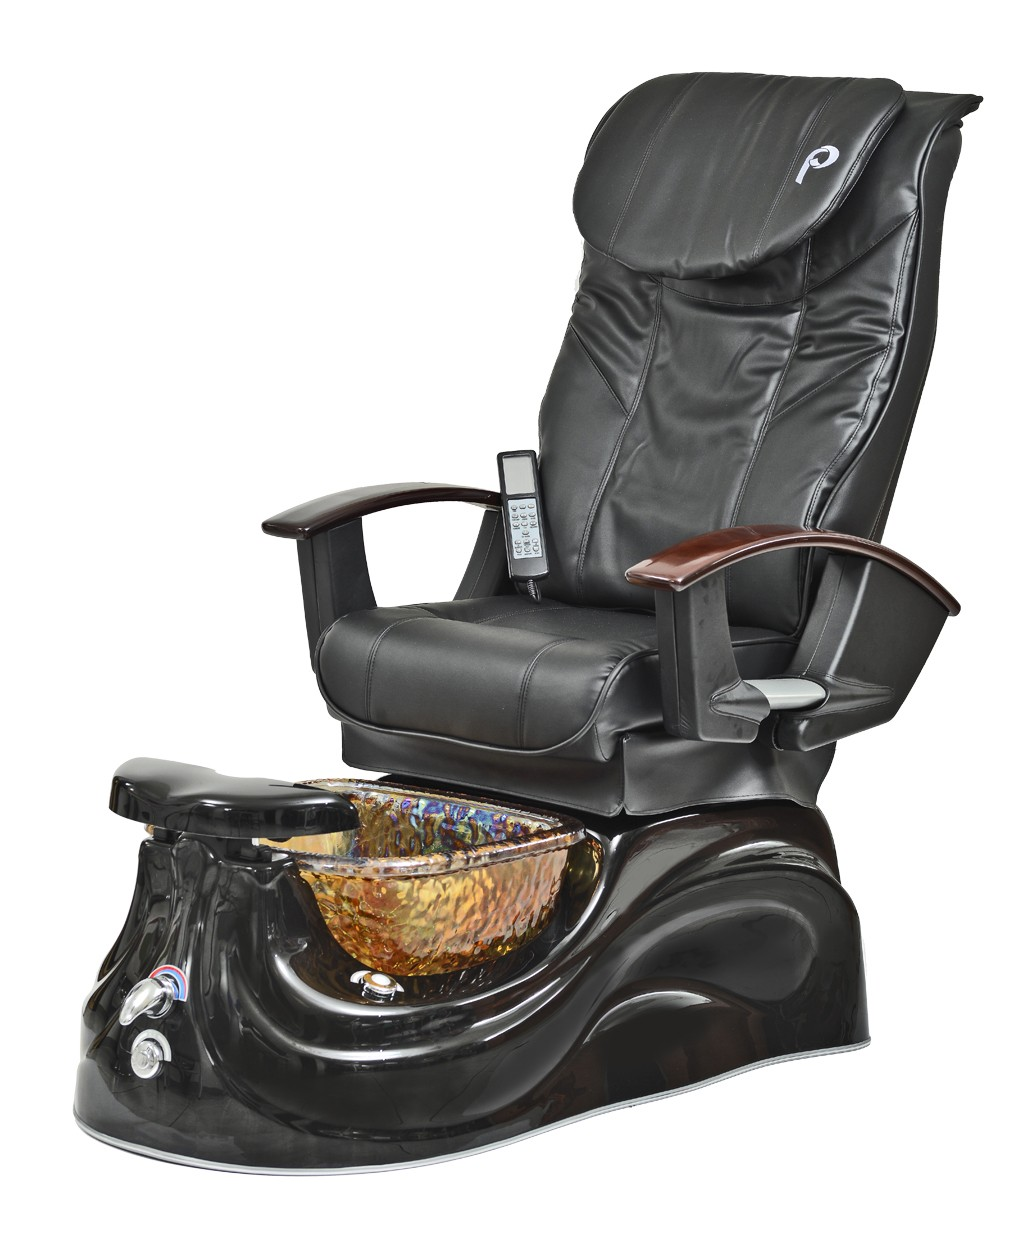 Cheap Massage Chairs Pibbs Ps65 San Marino Pipeless Pedicure Spa W Glass Bowl